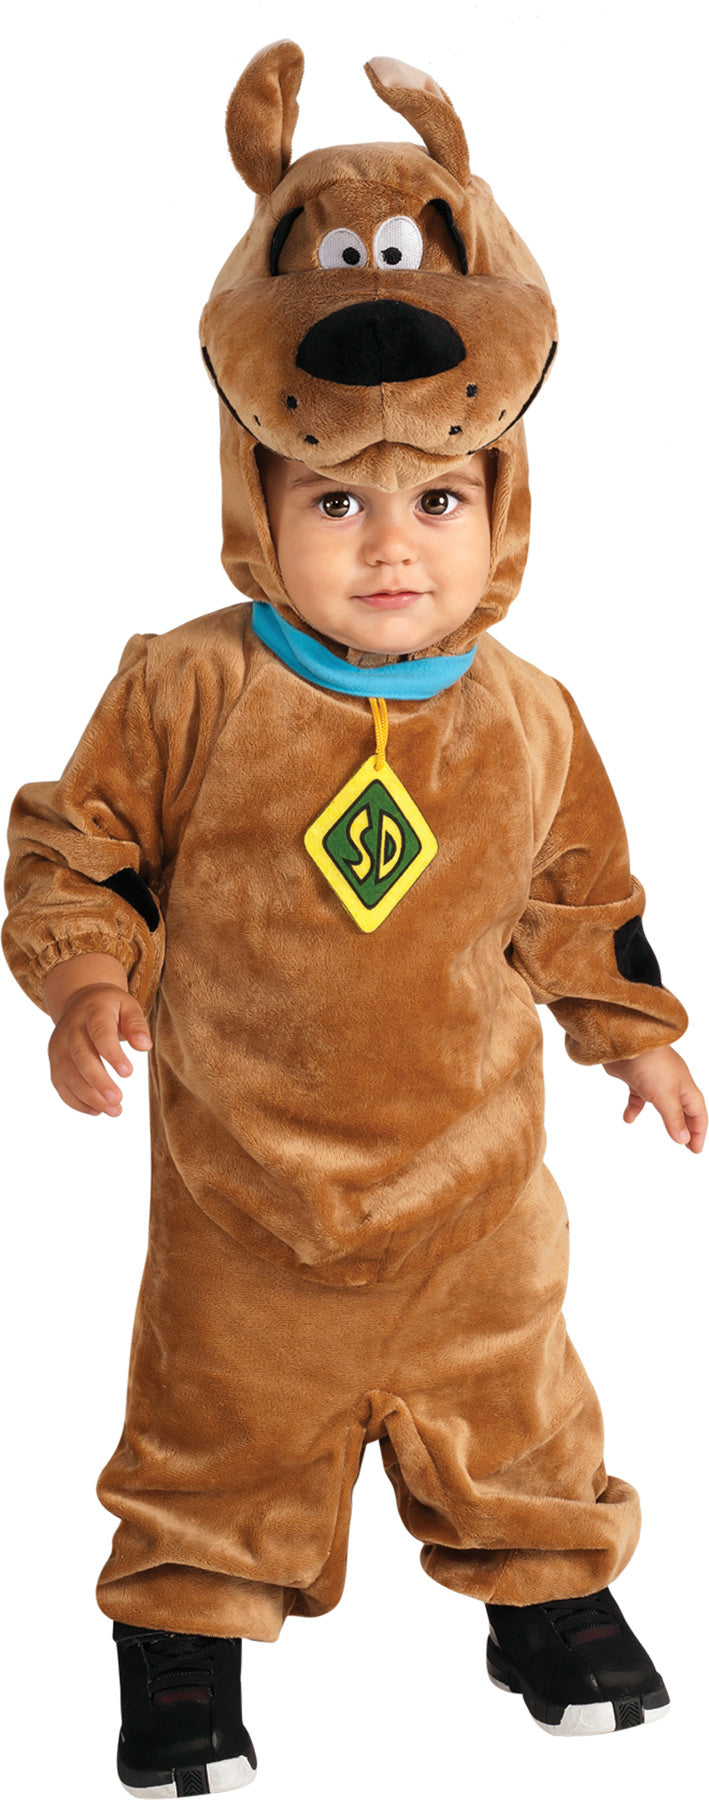 Scooby Doo - 12-18 Months - Willow Manor Shop